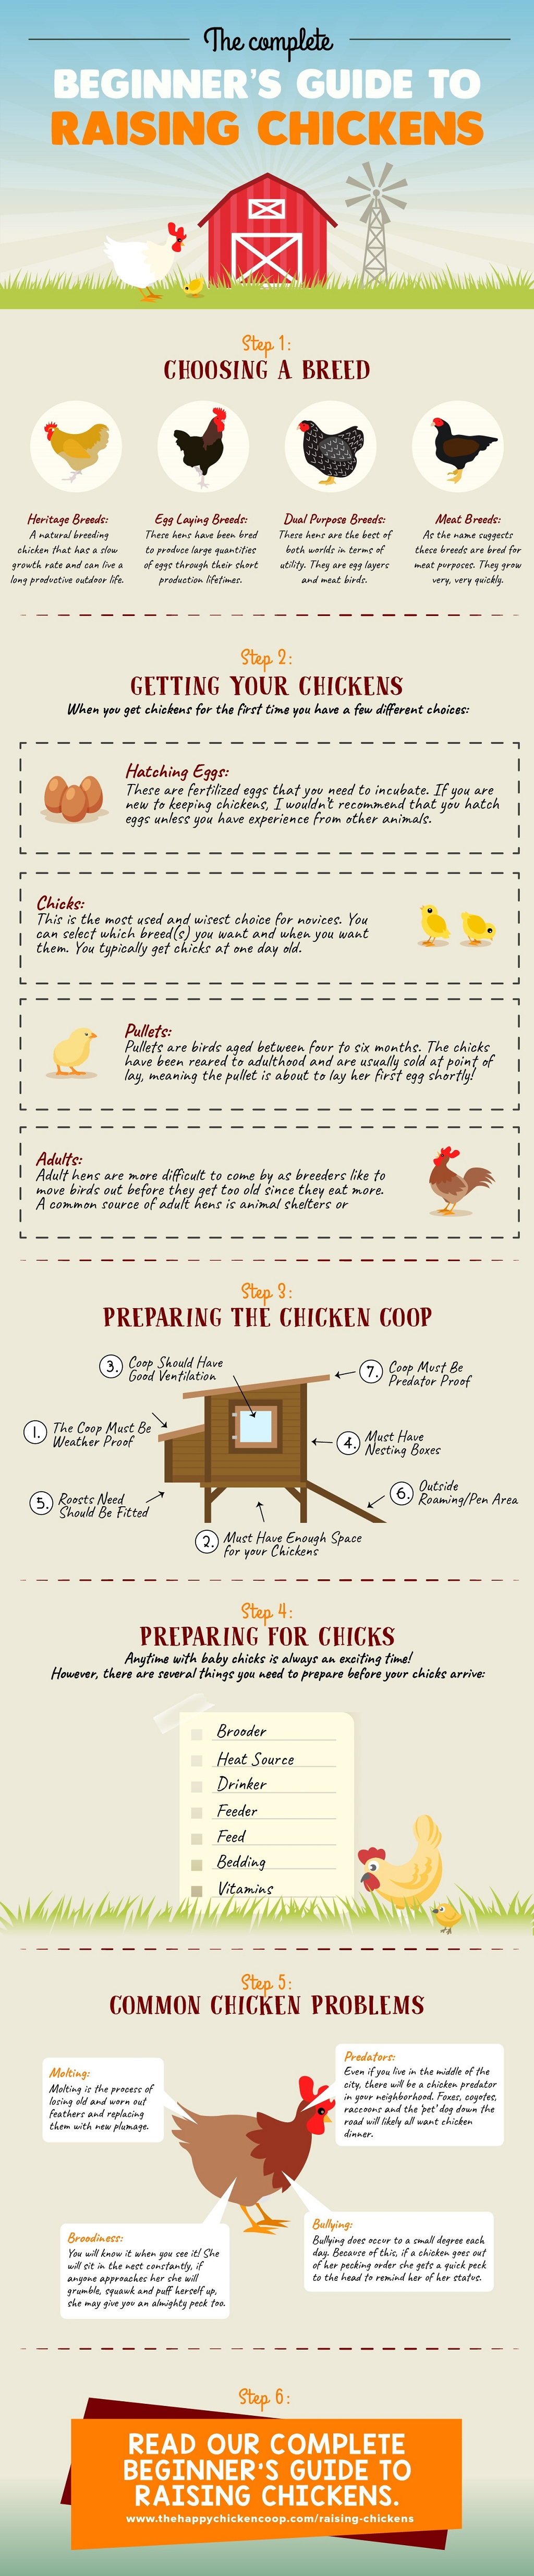 Beginners Guide to Raising Backyard Chickens Small Infographic - Beginner's Guide To Raising Backyard Chickens